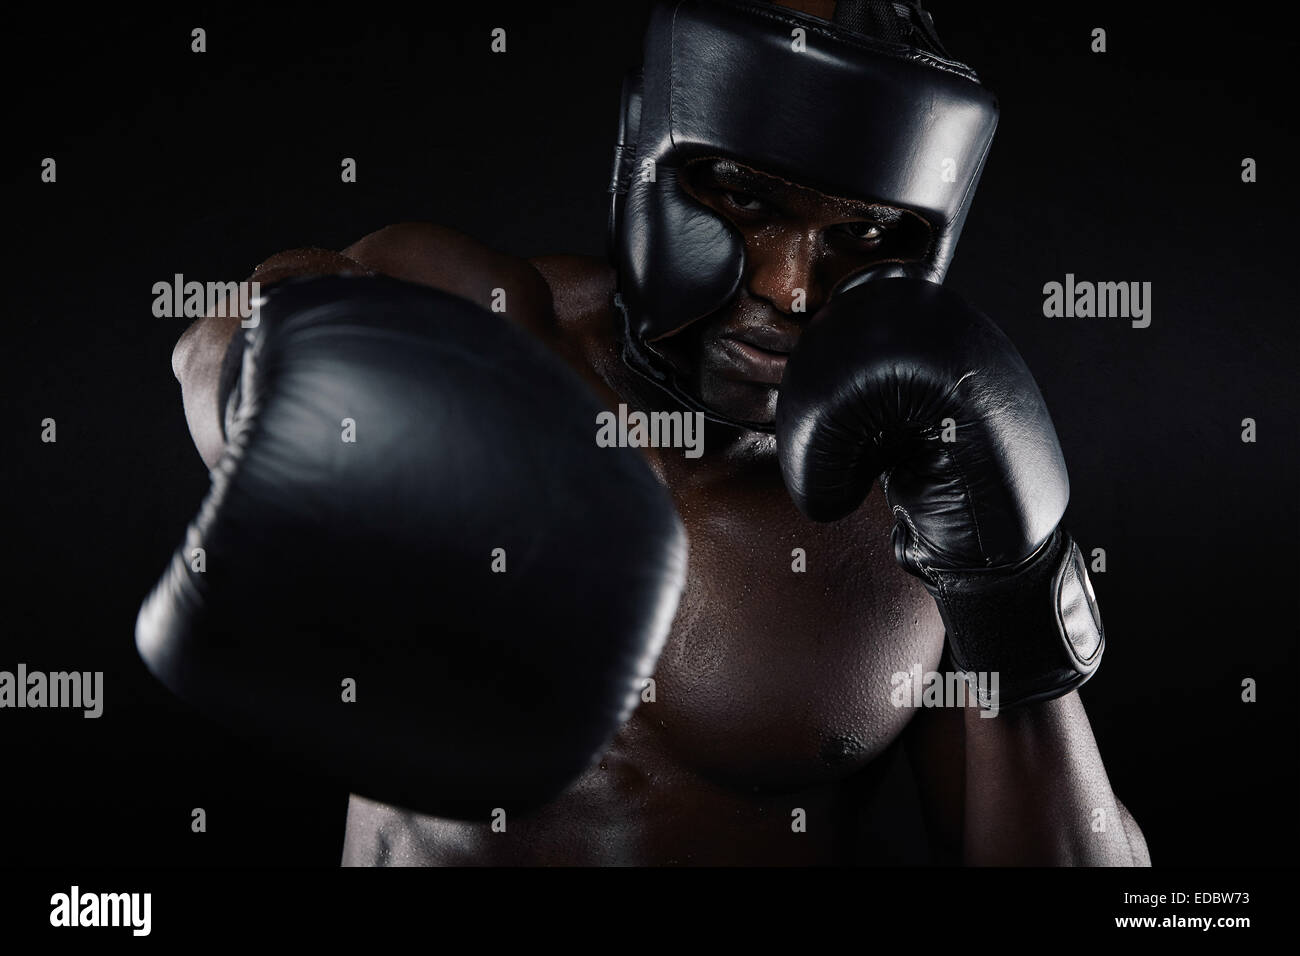 Portrait of African male practicing boxing looking at camera against black background. Male boxer throwing a punch - Stock Image